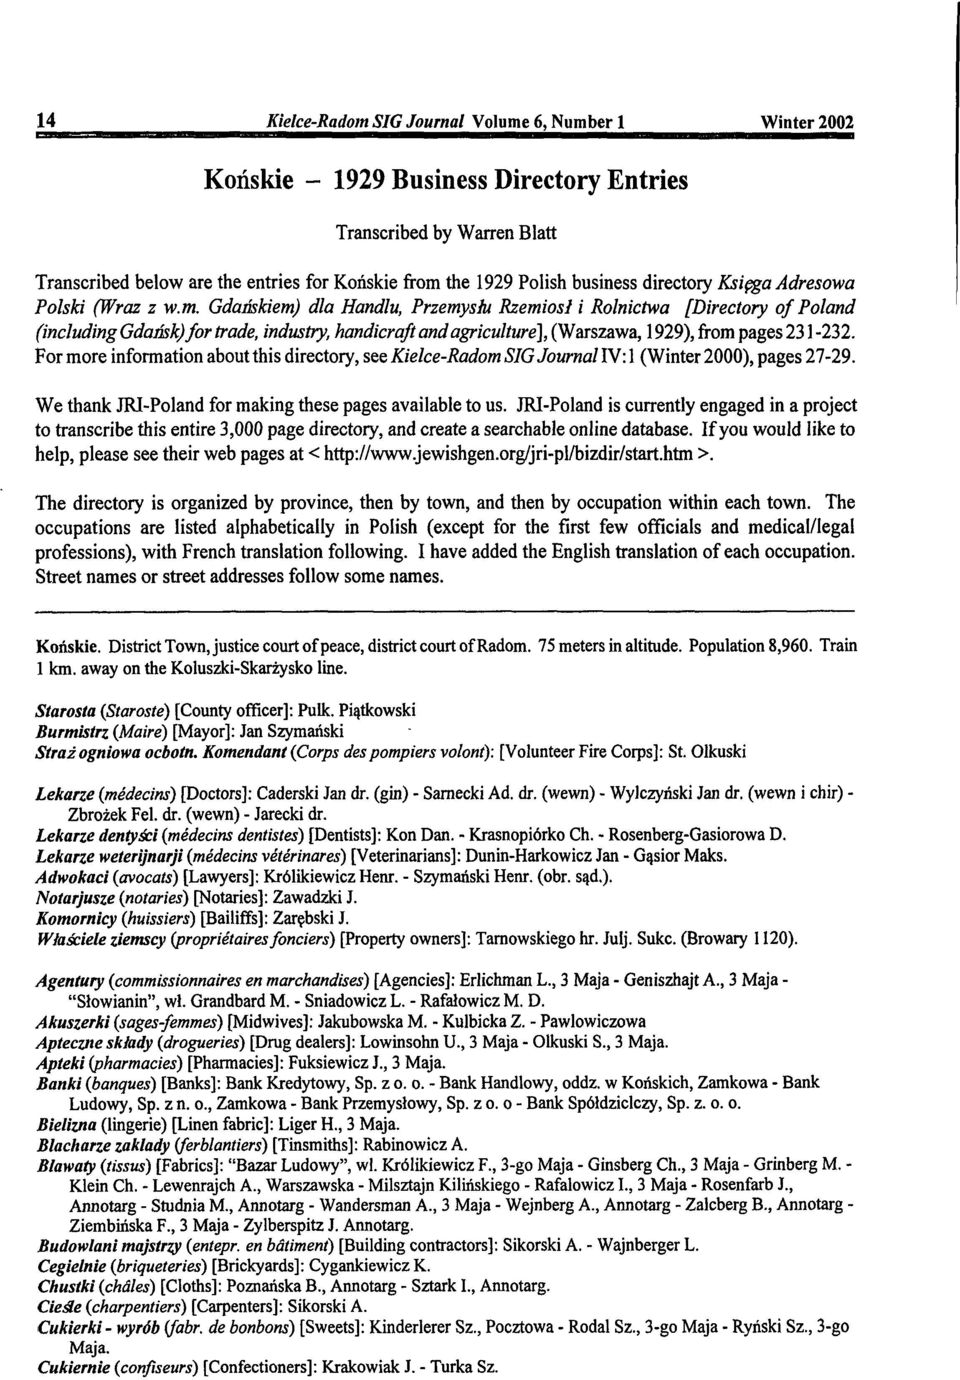 Gdaiiskiem) dla Handlu, Przemysht Rzemiosi i Rolnictwa [Directory of Poland (including Gdansk) for trade, industry, handicraft and agriculture], (Warszawa, 29), from pages 1-2.